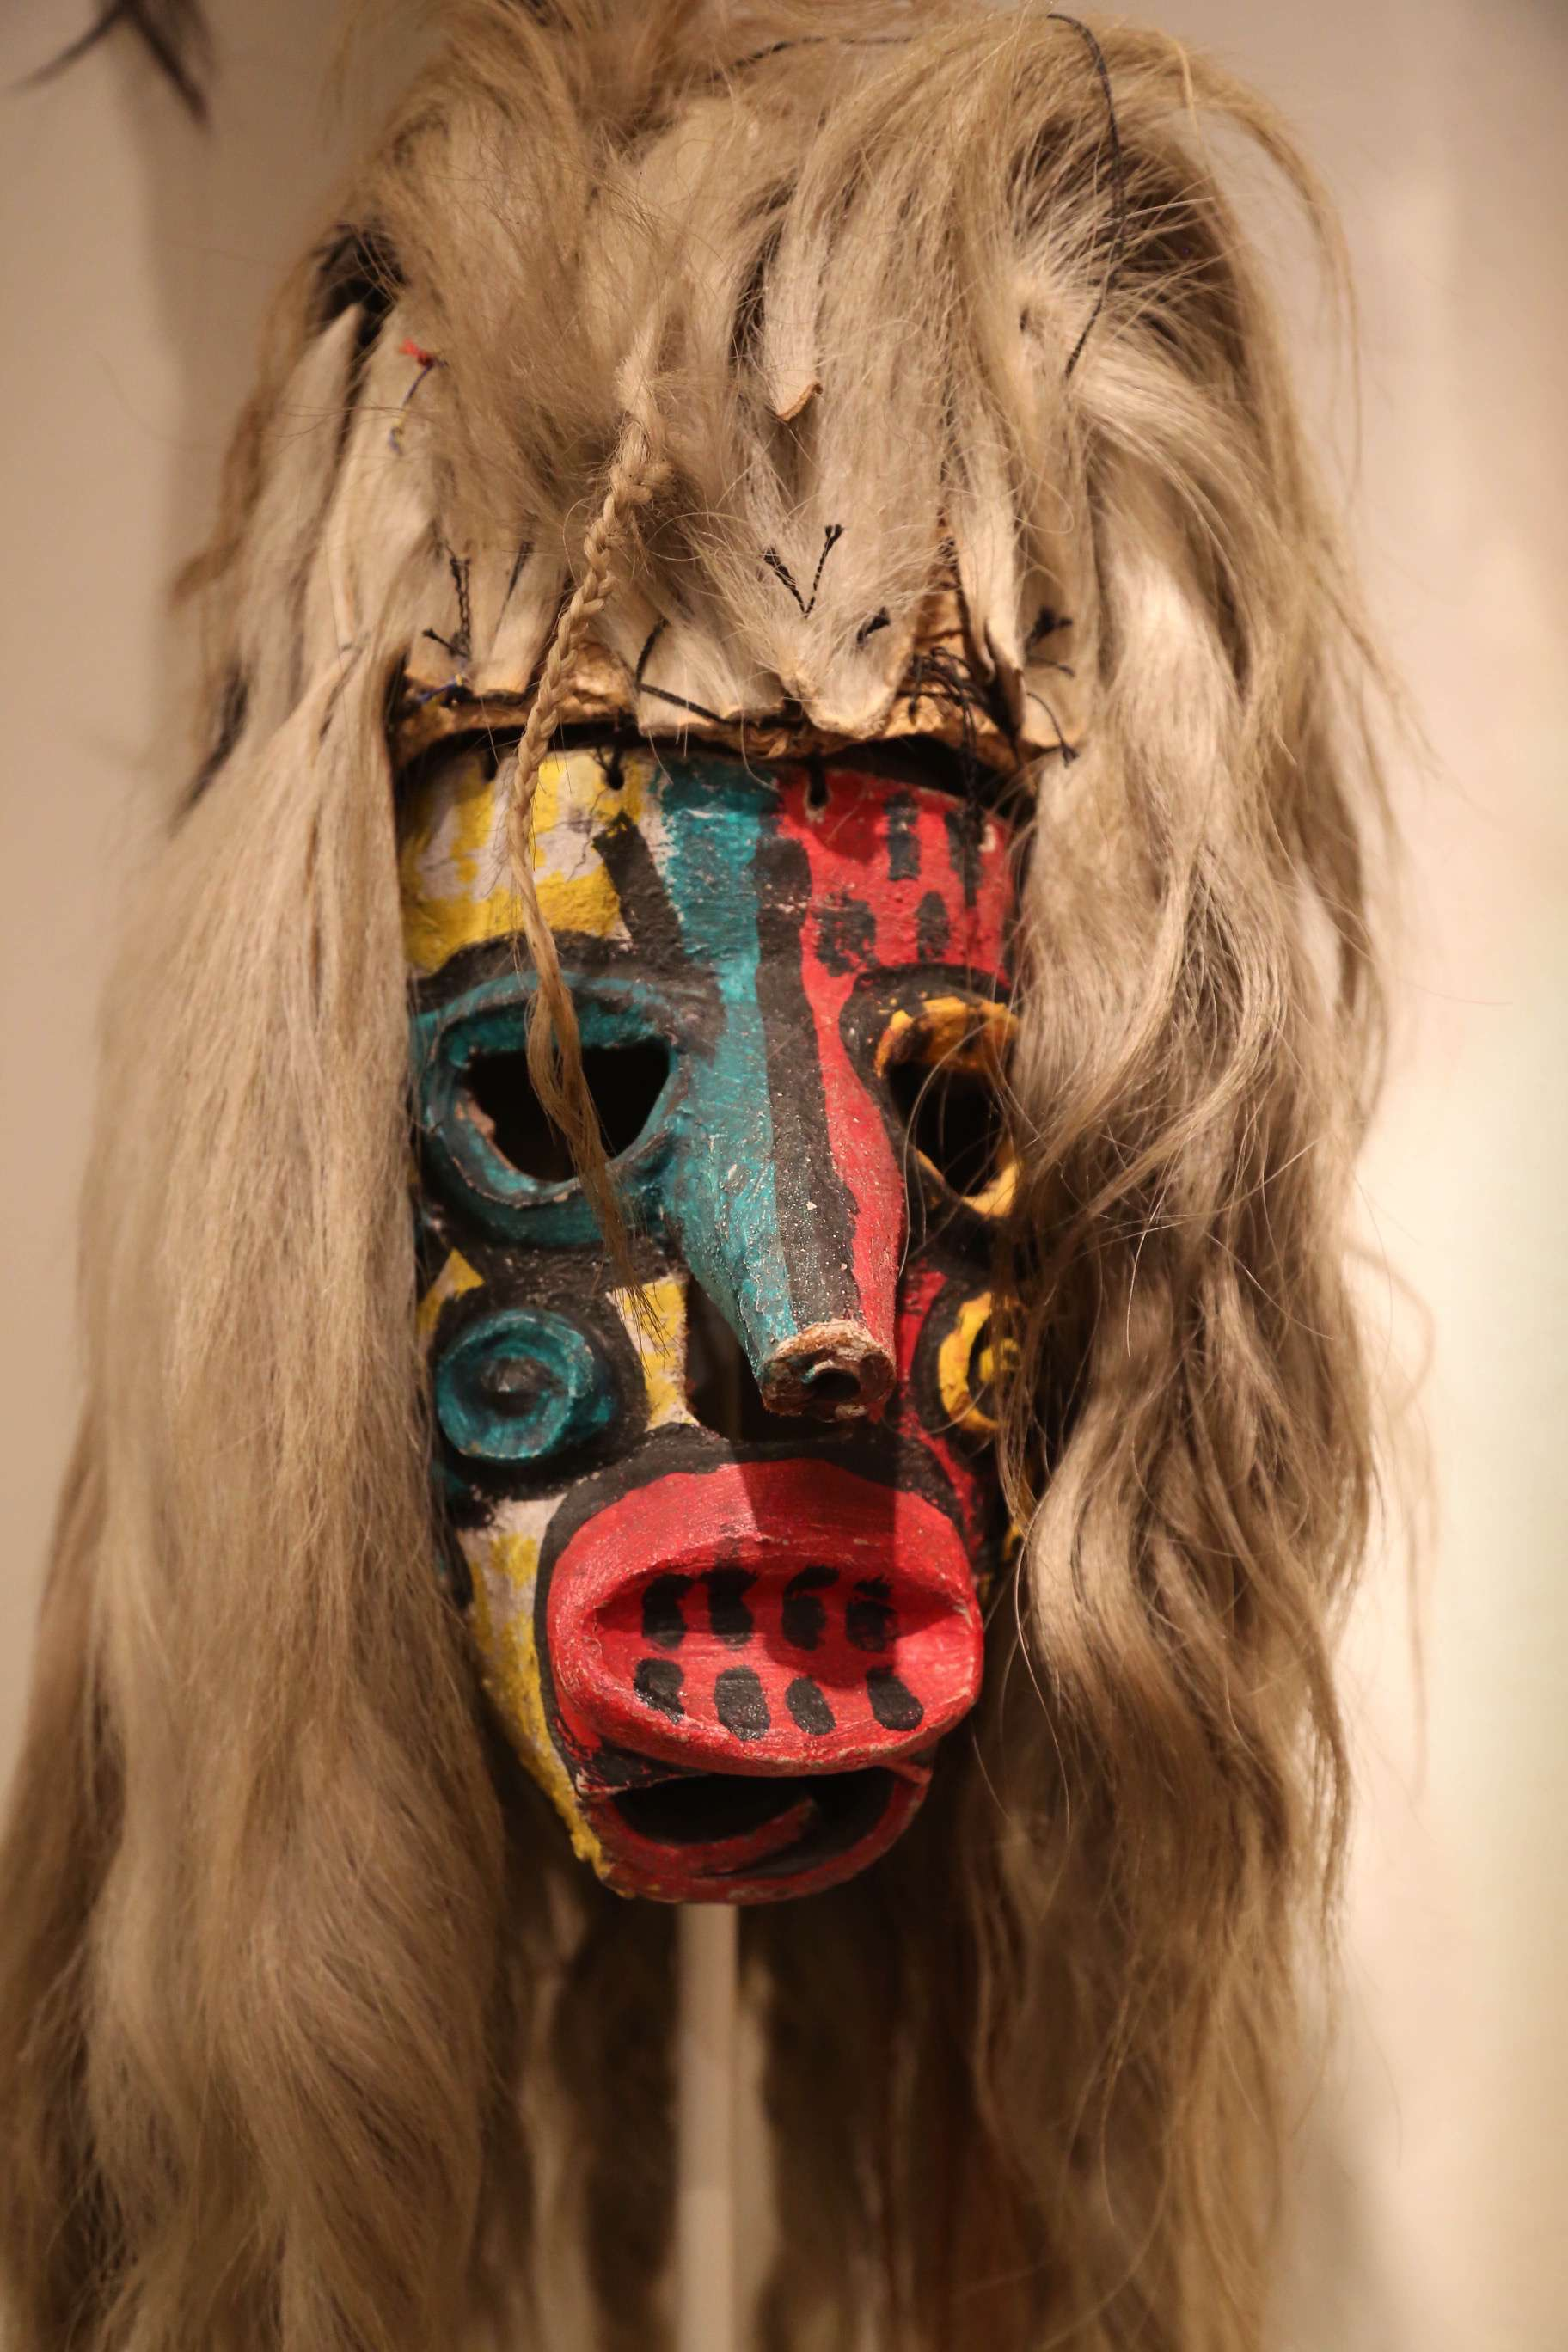 La Otra Cara de Mexico, in San Miguel de Allende, has one of the finest curated collection of masks in all of Mexico.